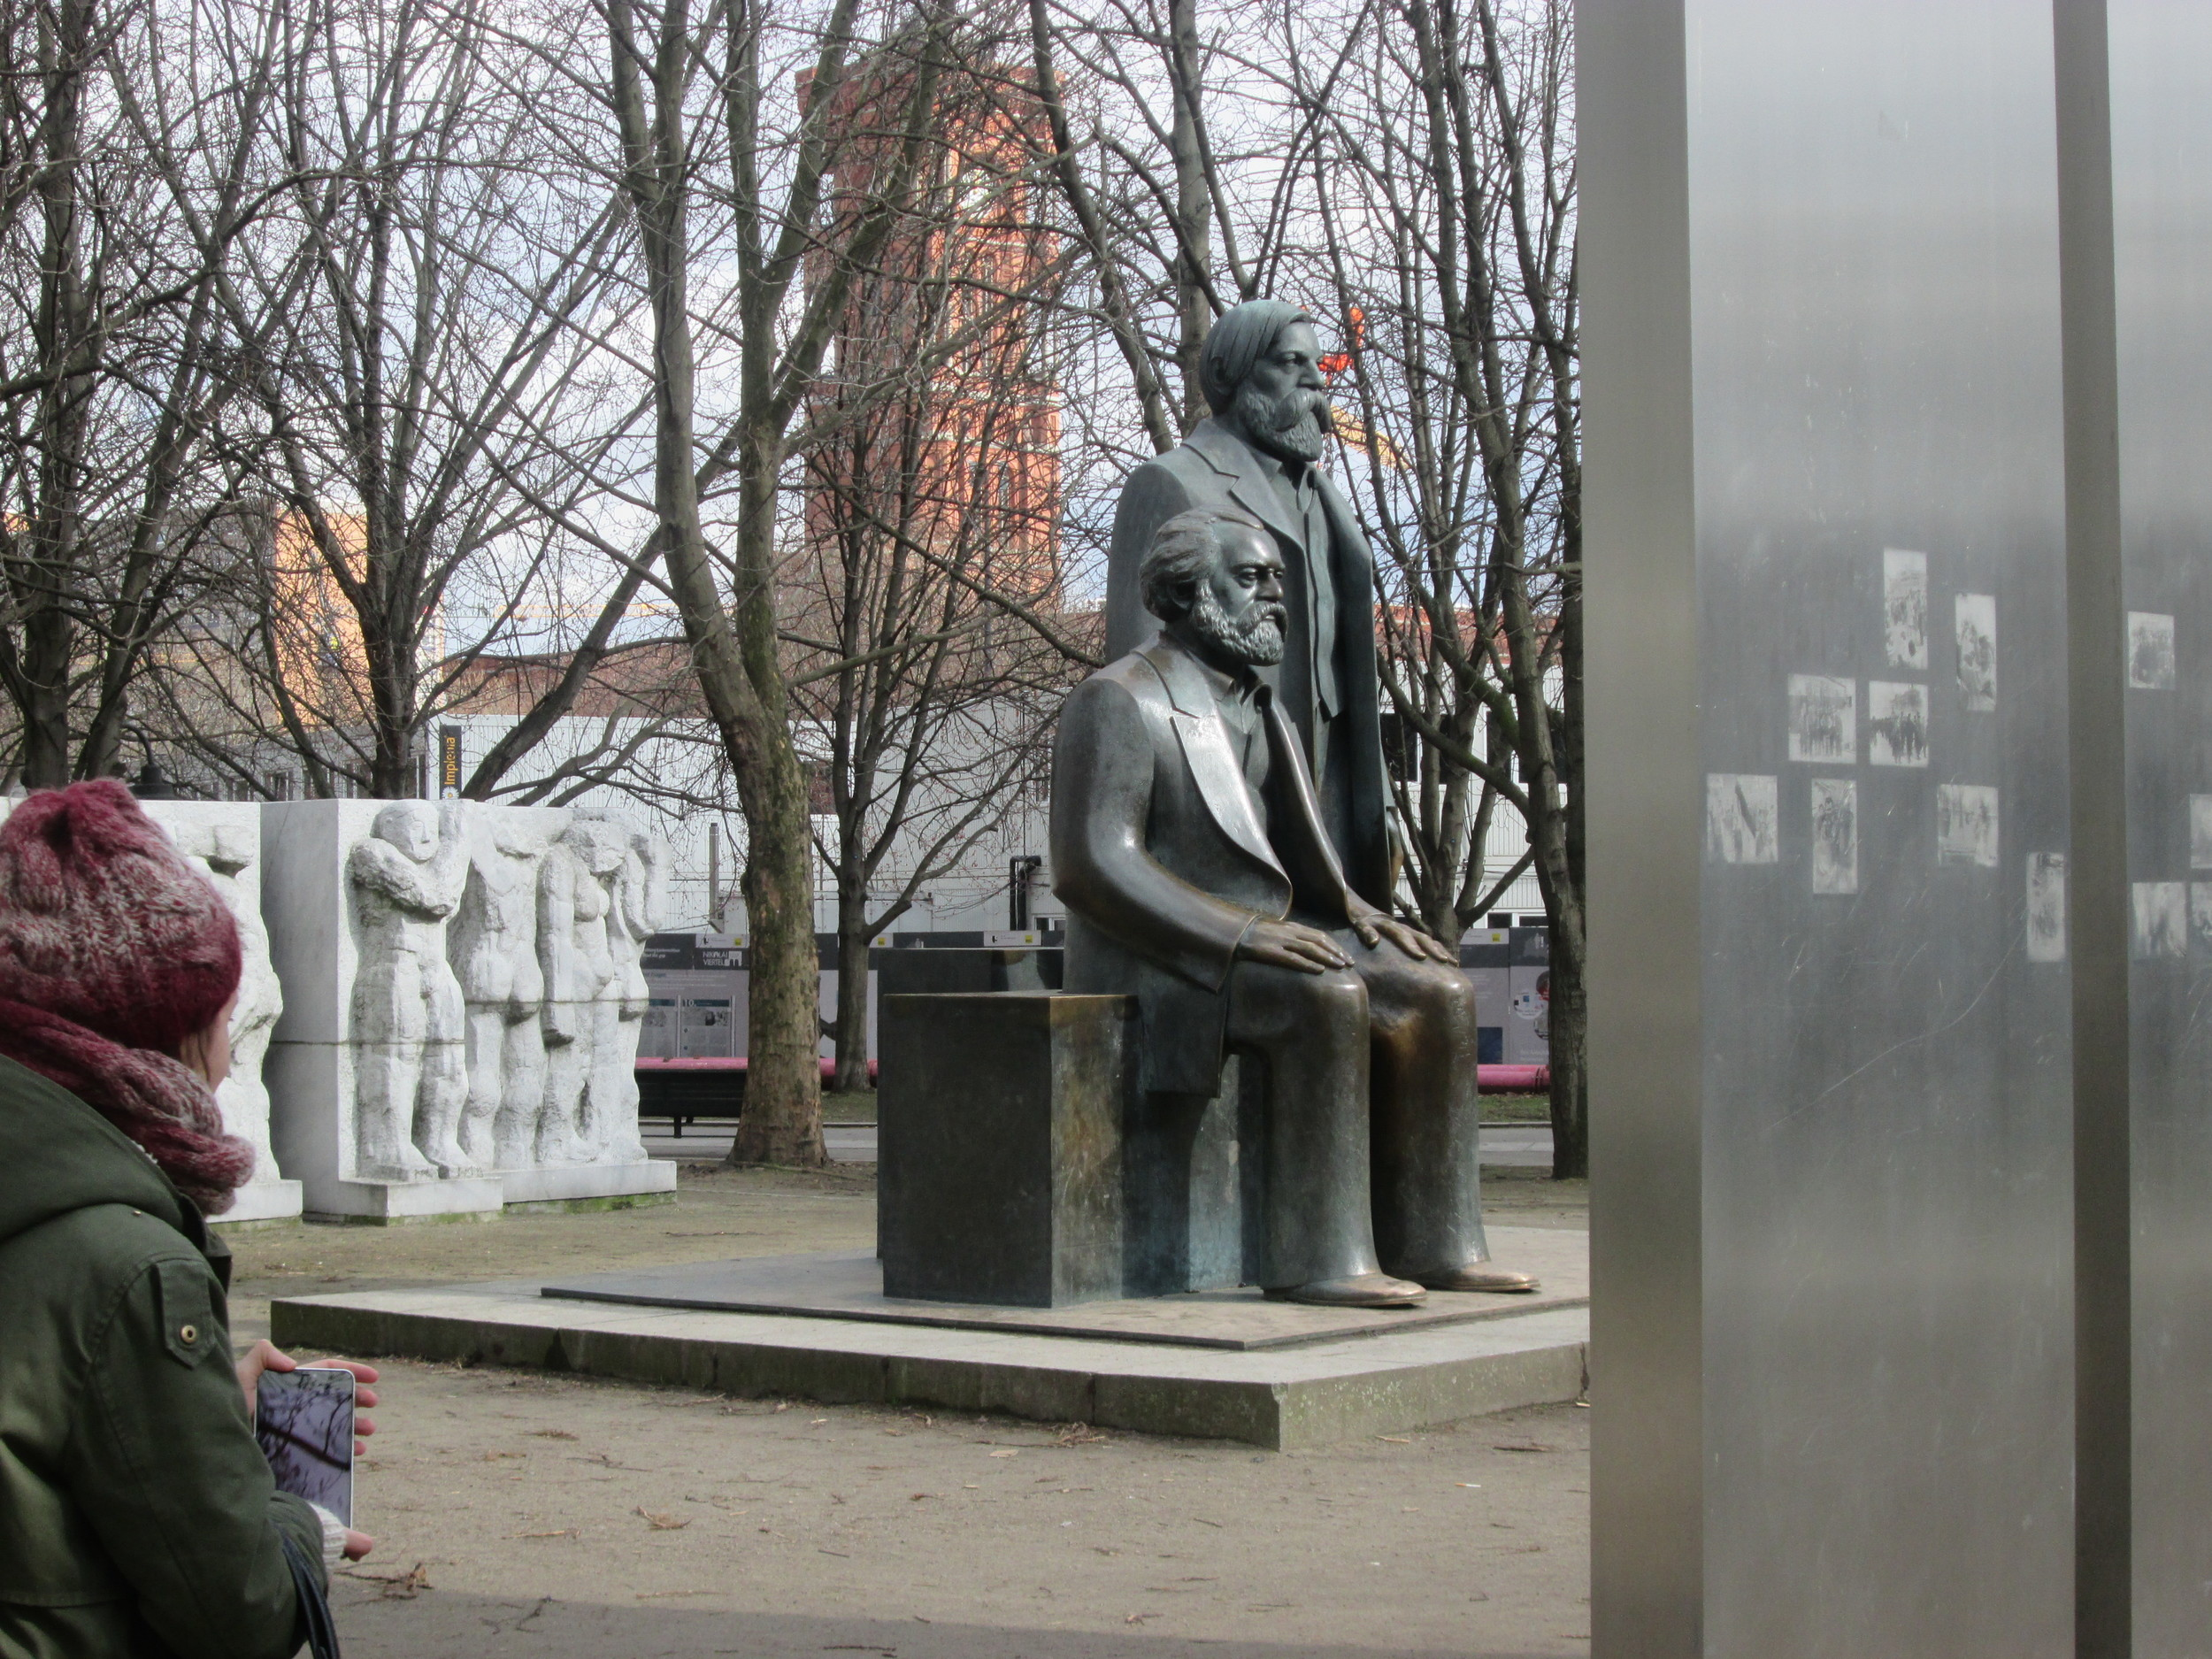 Statues of Karl Marx (seated) and Friedrich Engels (standing) in the Marx-Engels-Forum in former East Berlin